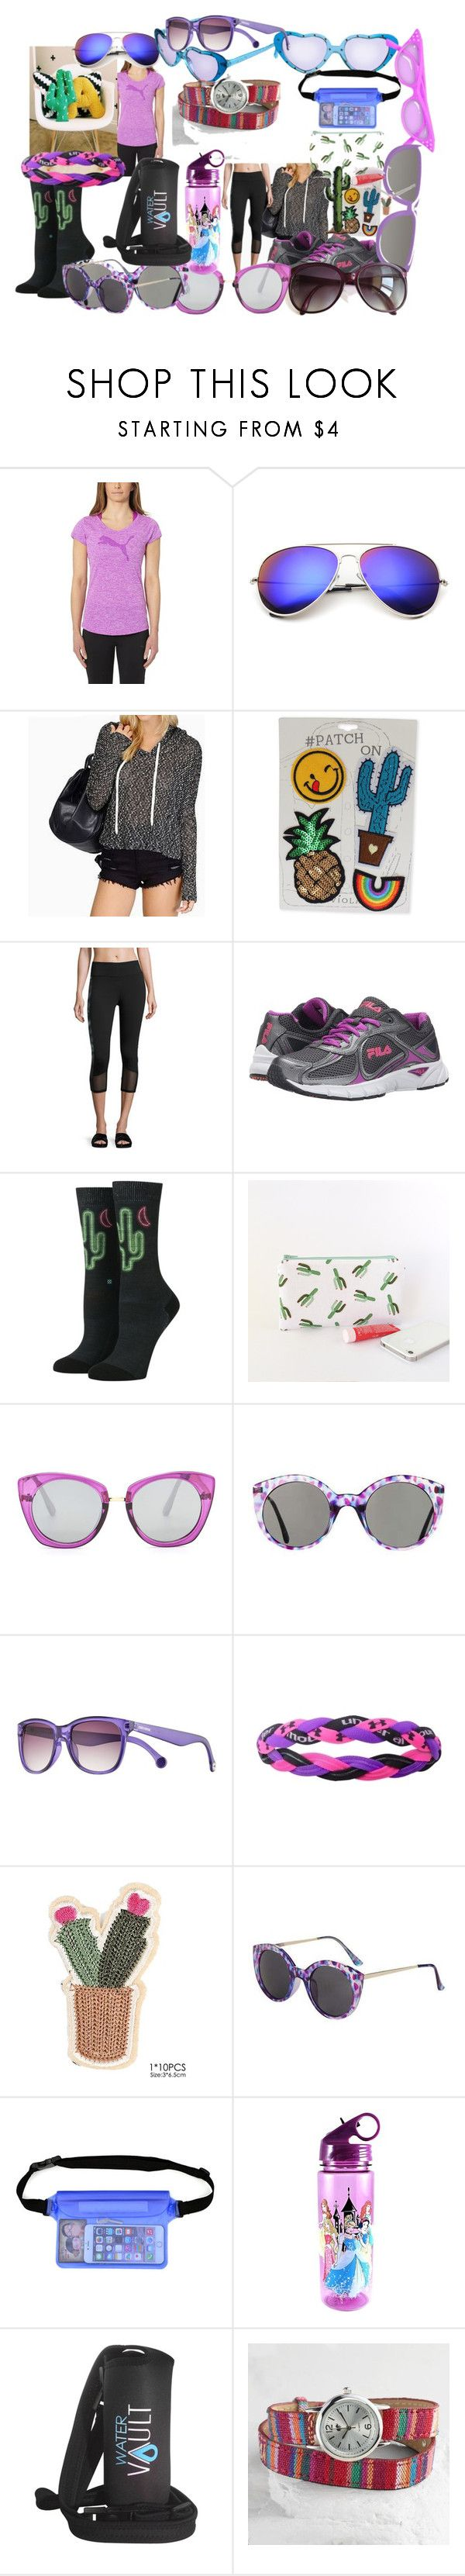 """an AZ run"" by lerp ❤ liked on Polyvore featuring Puma, Viola, Marika, Fila, Stance, Topshop, Converse, Under Armour, Disney and Cost Plus World Market"